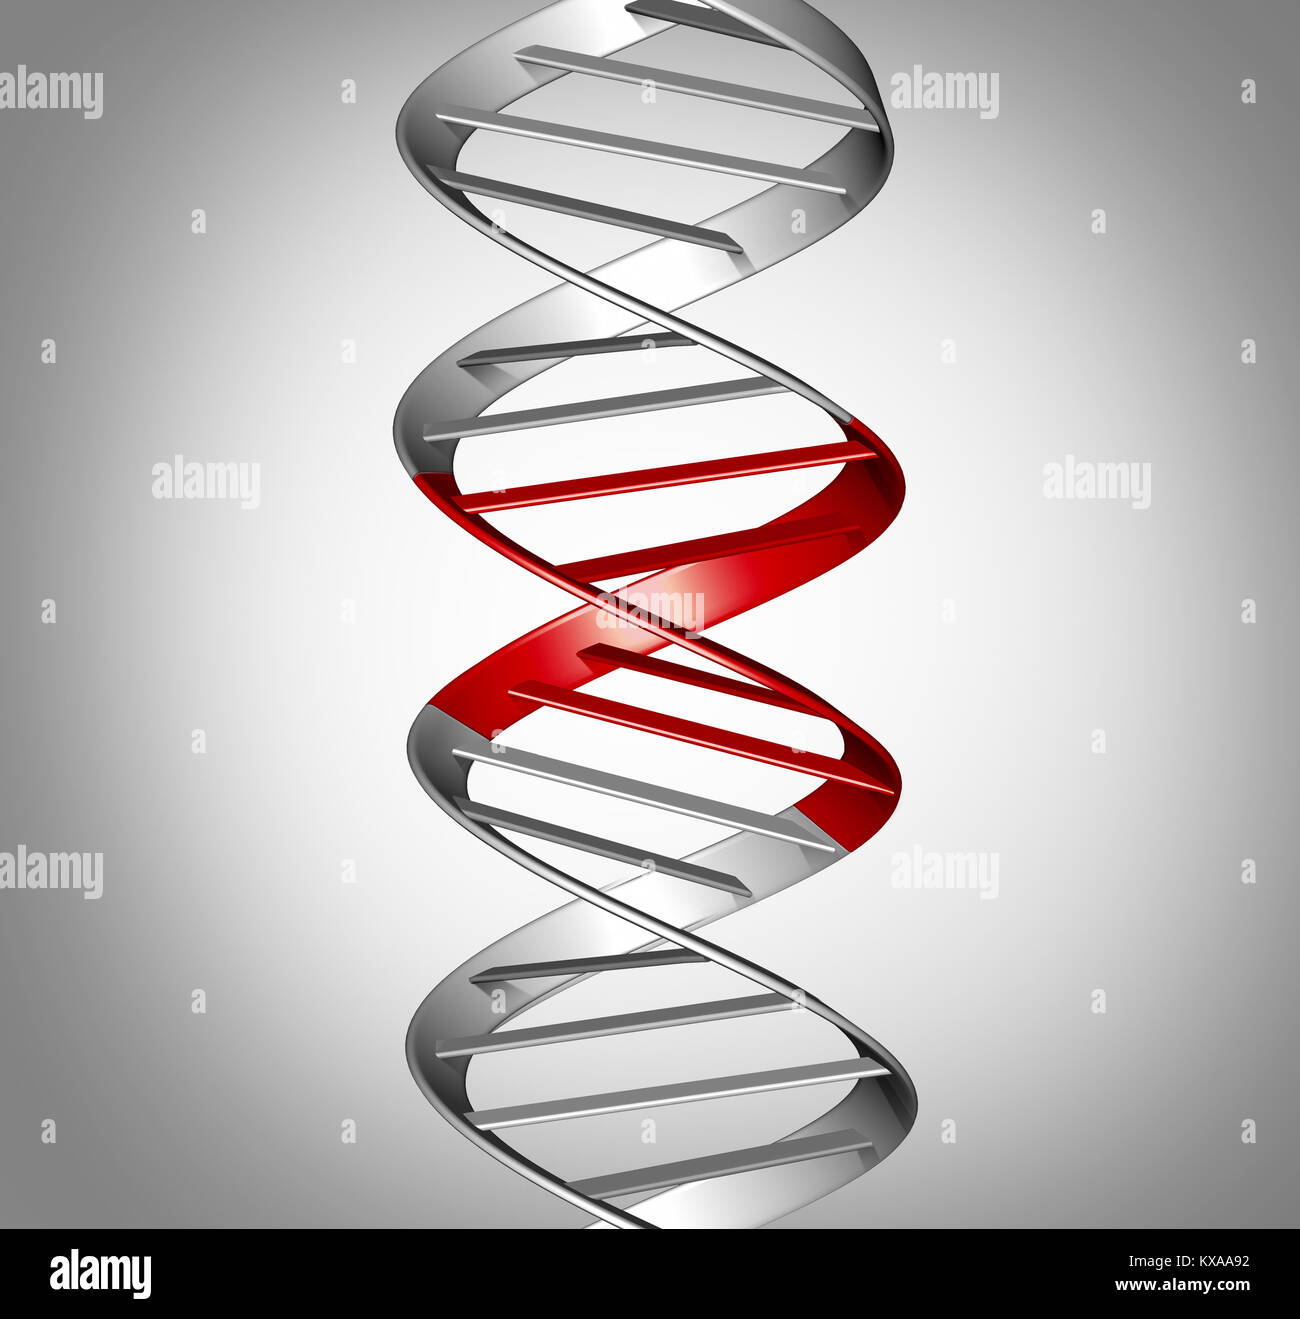 Genomic Therapy And Gene Therapeutic Treatment Or Genomic Editing Or